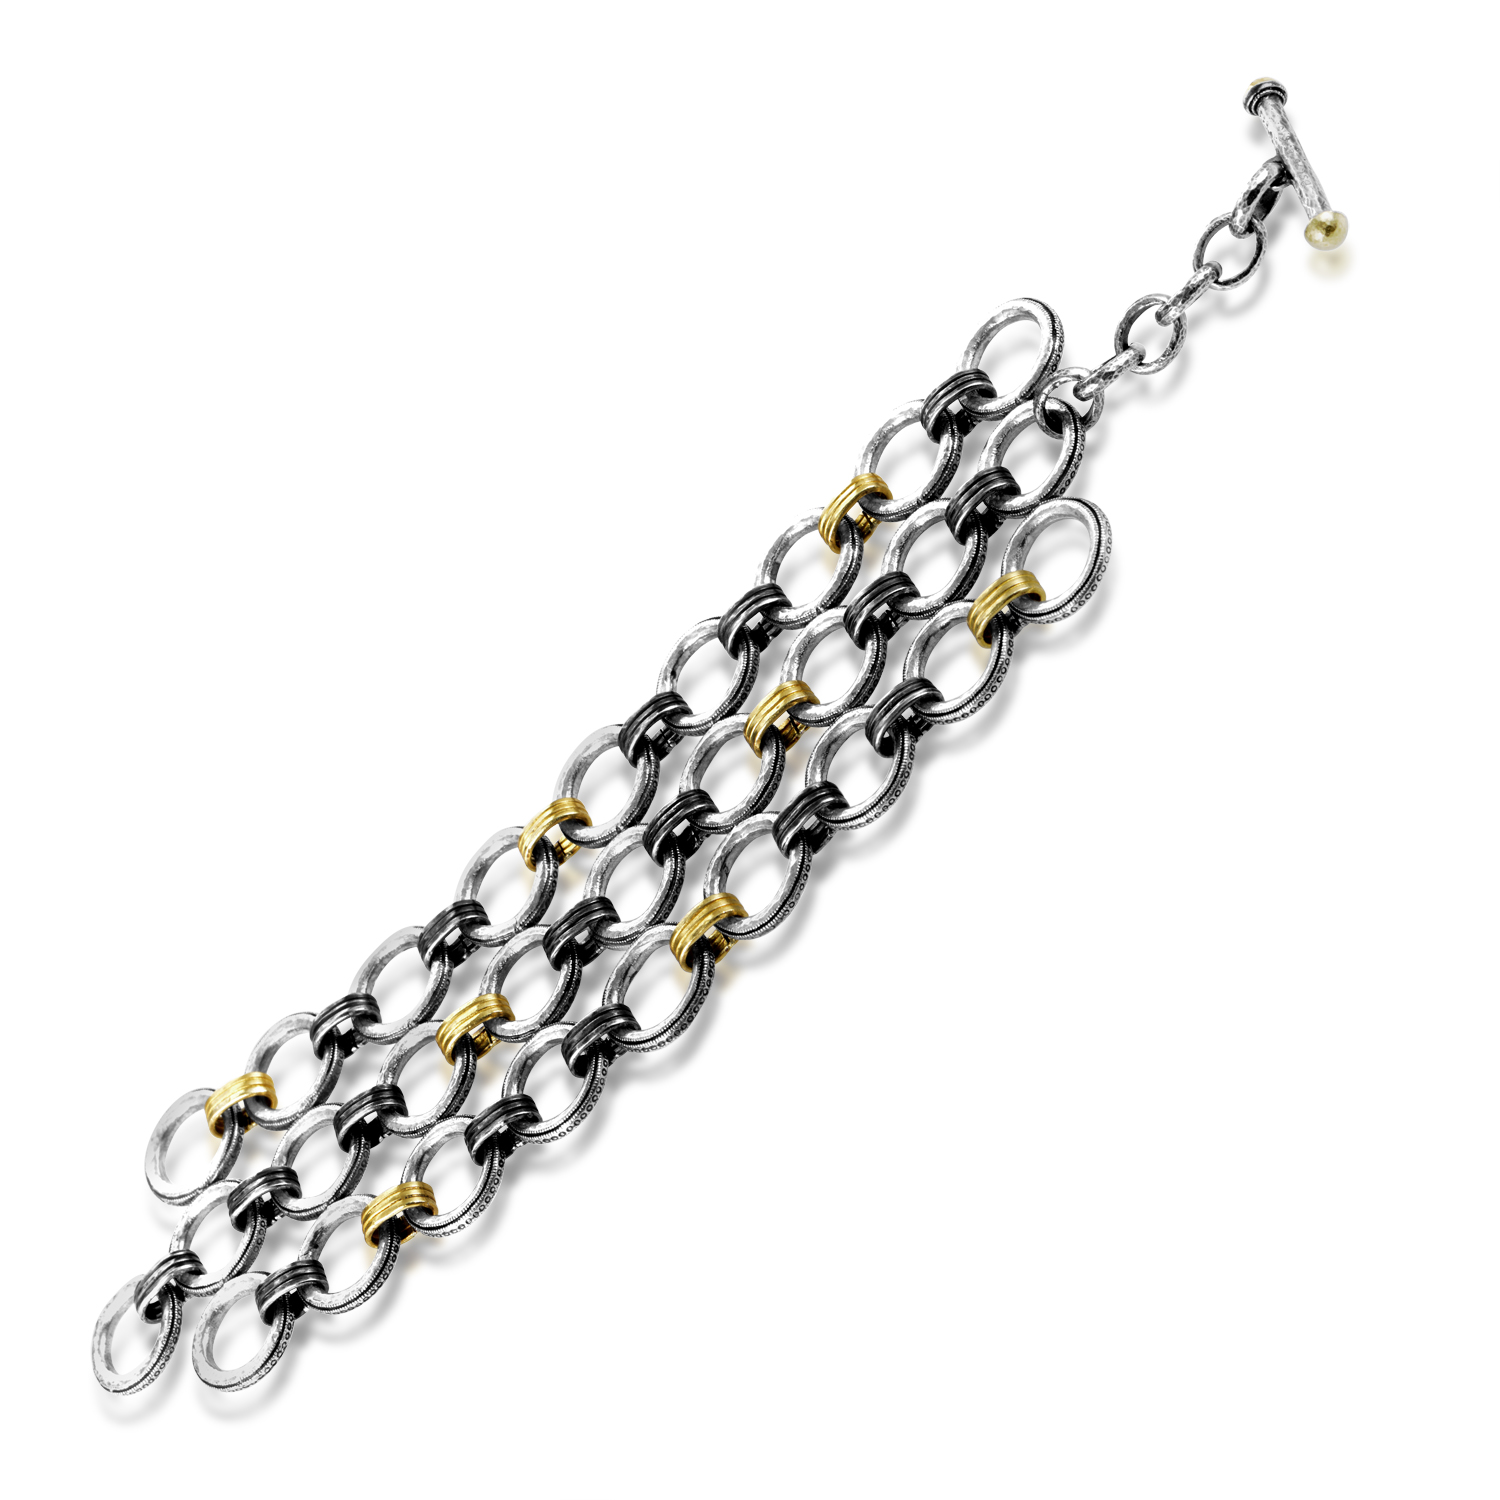 Hoopla Women's Silver & 24K Yellow Gold Toggle Bracelet